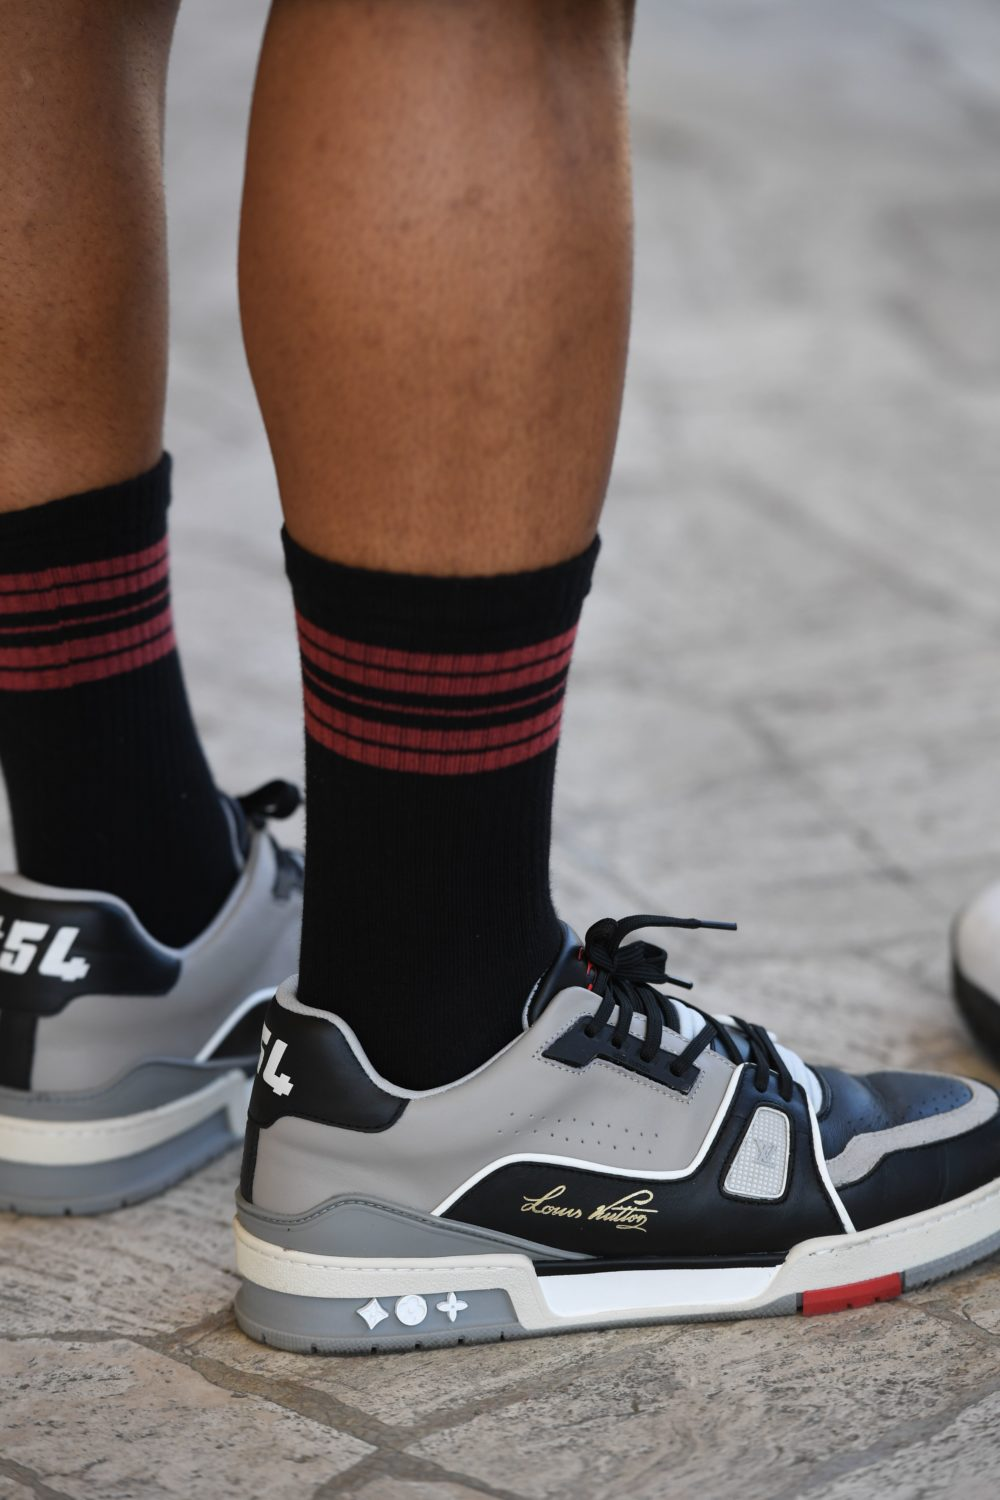 Luxury sneakers are a common sight on the streets at Pitti Immagine Uomo, as evidenced by these bold Louis Vuitton kicks going for $1,625 on StockX.